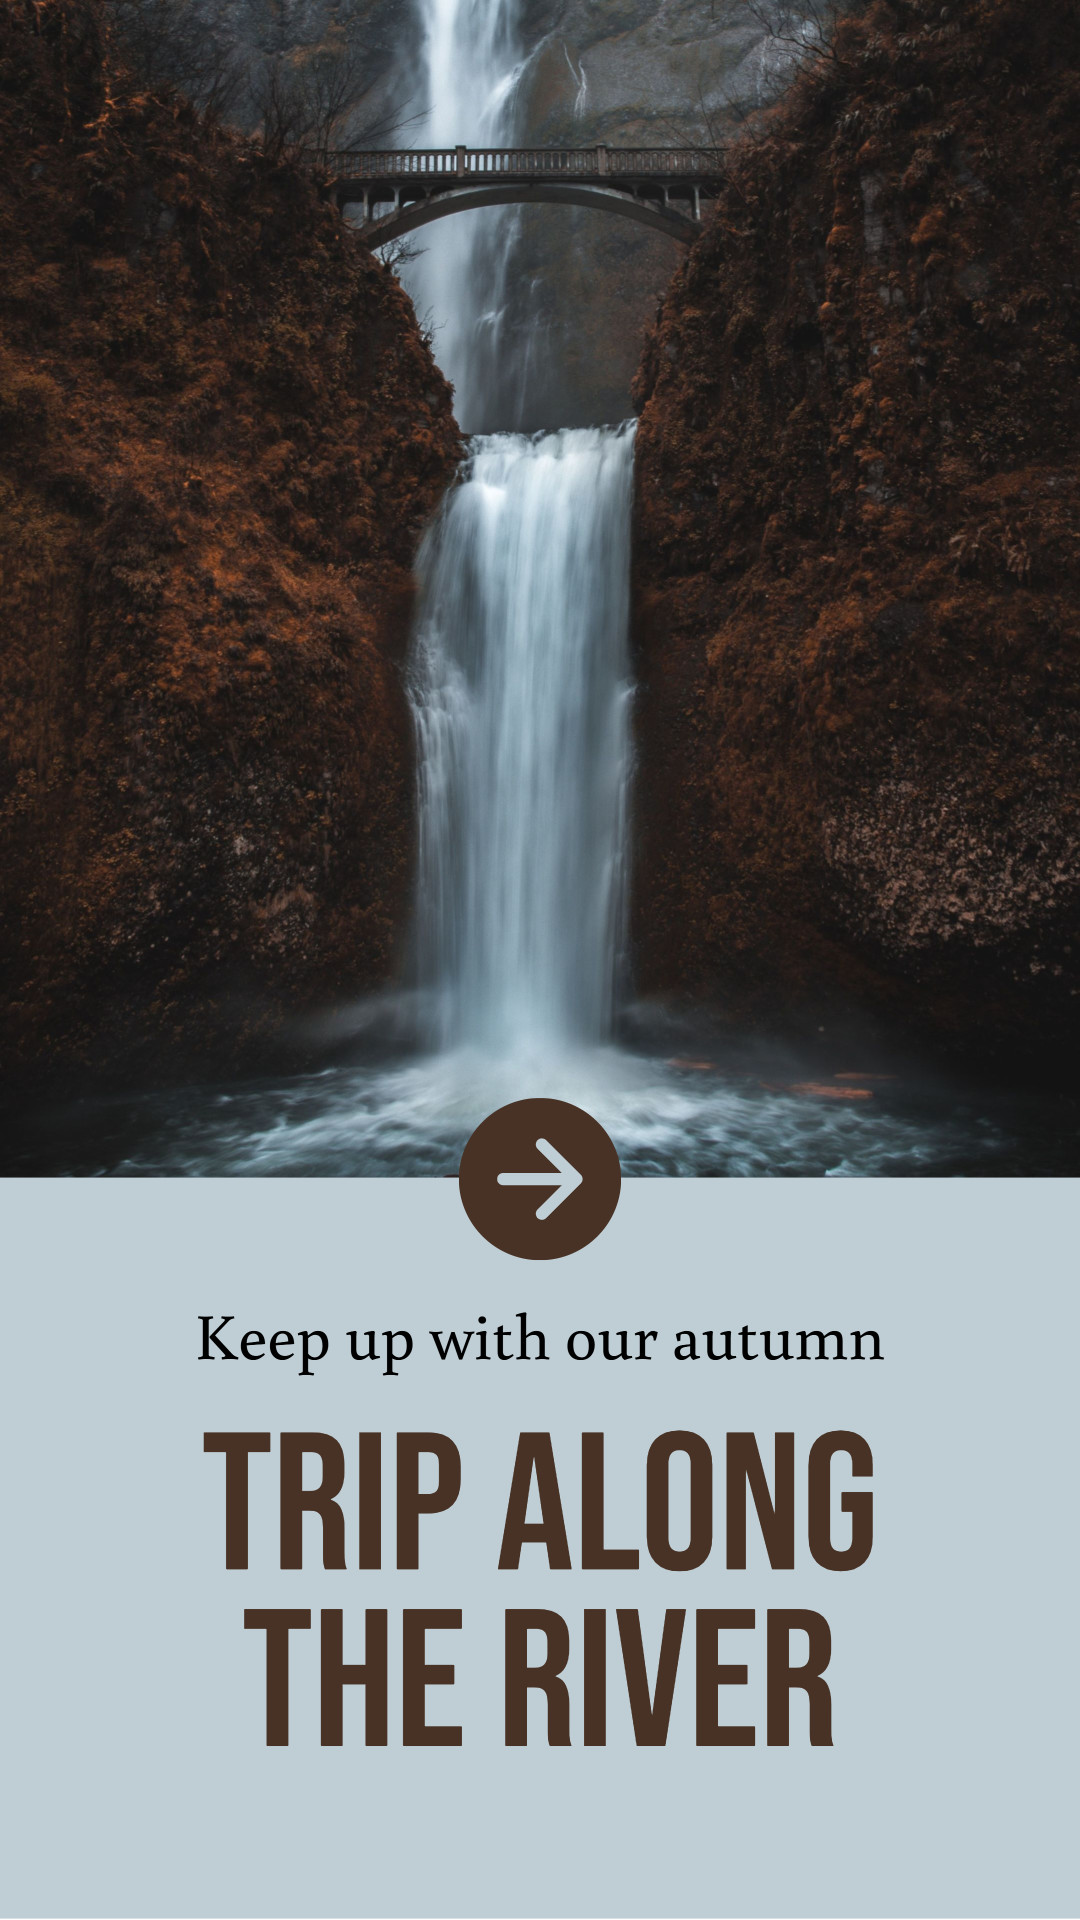 Keep up with out autumn trip along the river